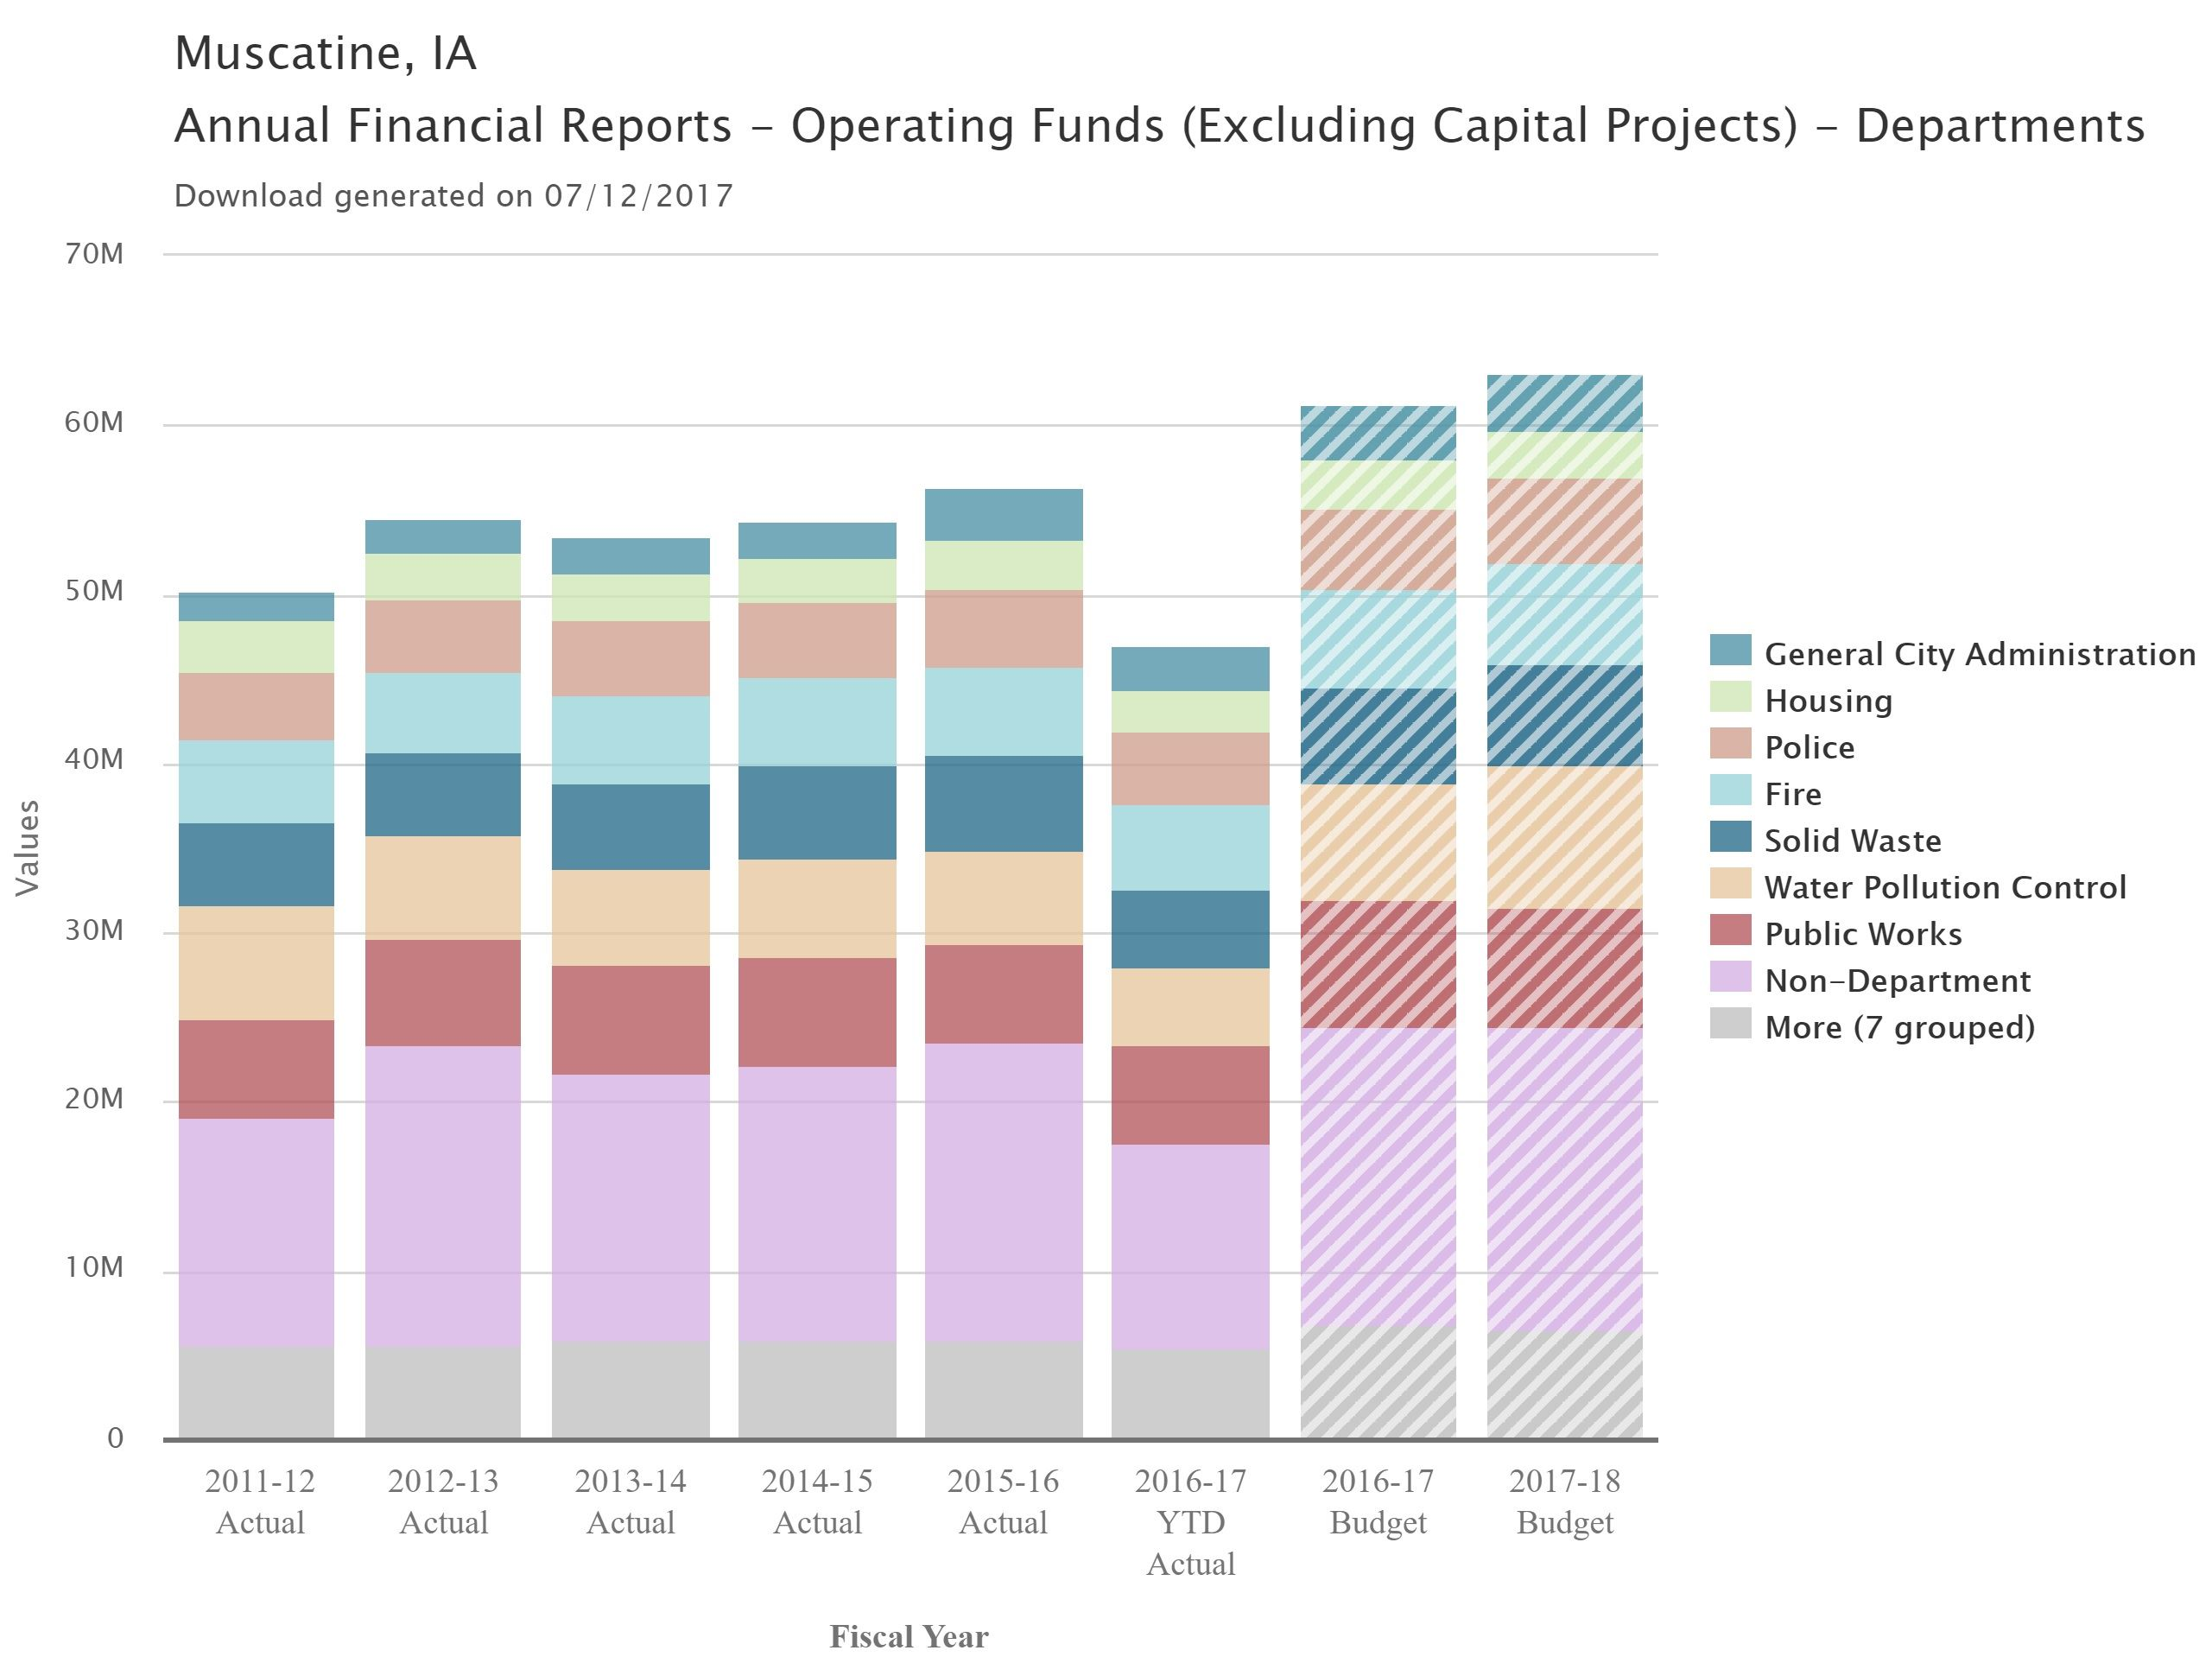 Annual Financial Reports - Operating Funds